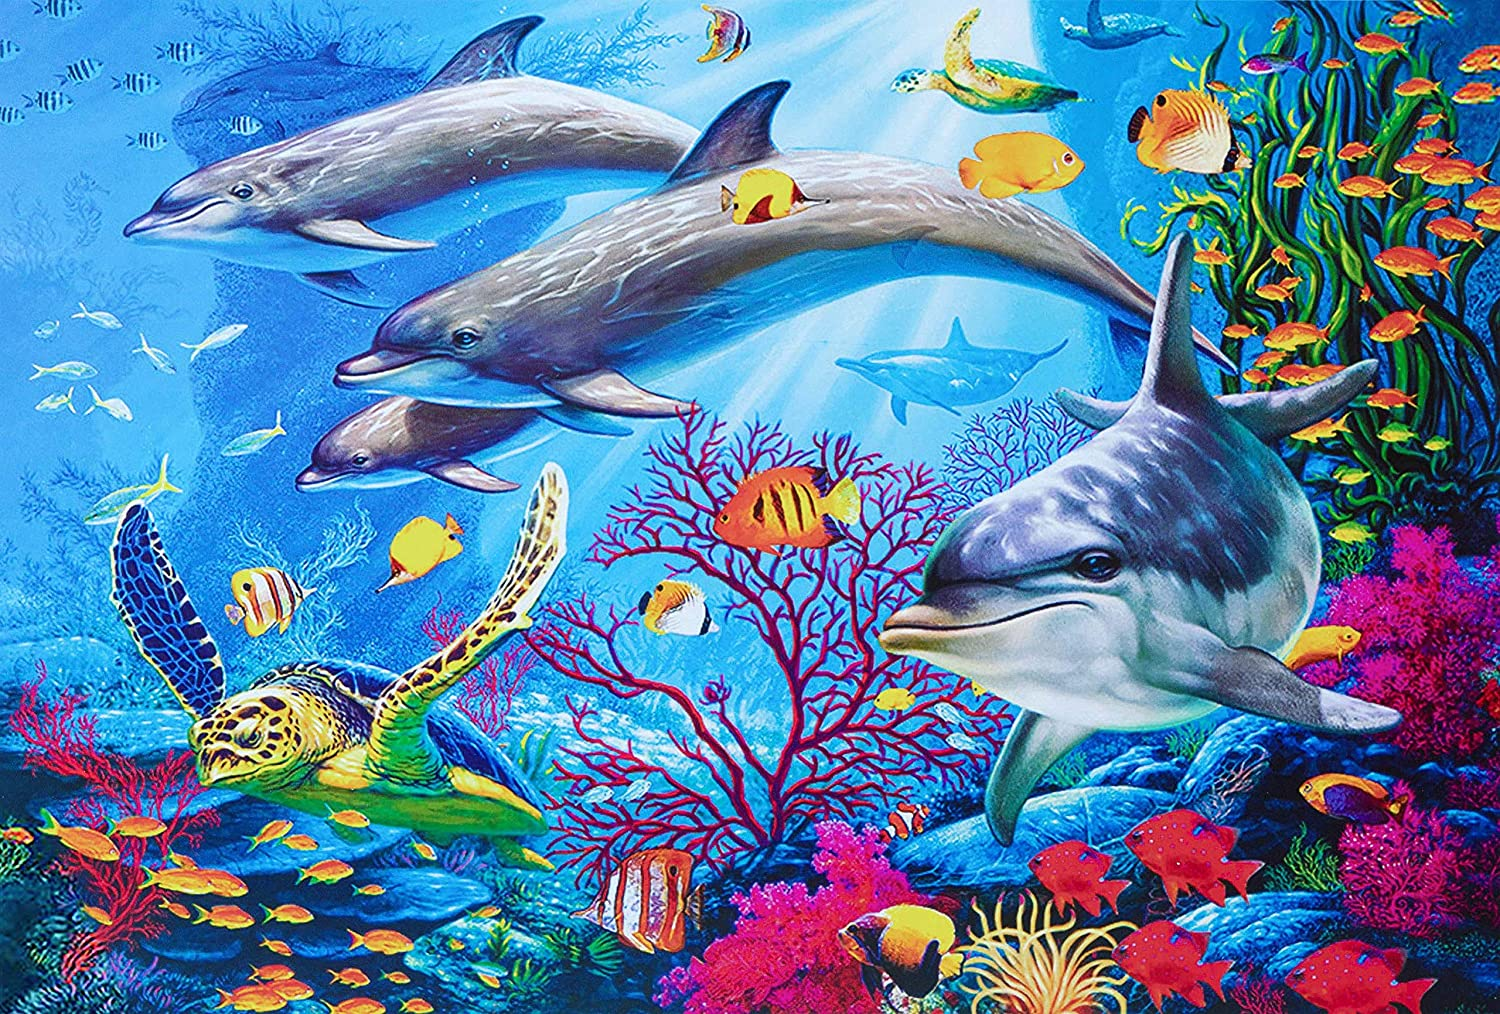 1000 Pcs Jigsaw Puzzles - Ocean World, Educational Intellectual Decompressing Spaß Game für Kids Adults